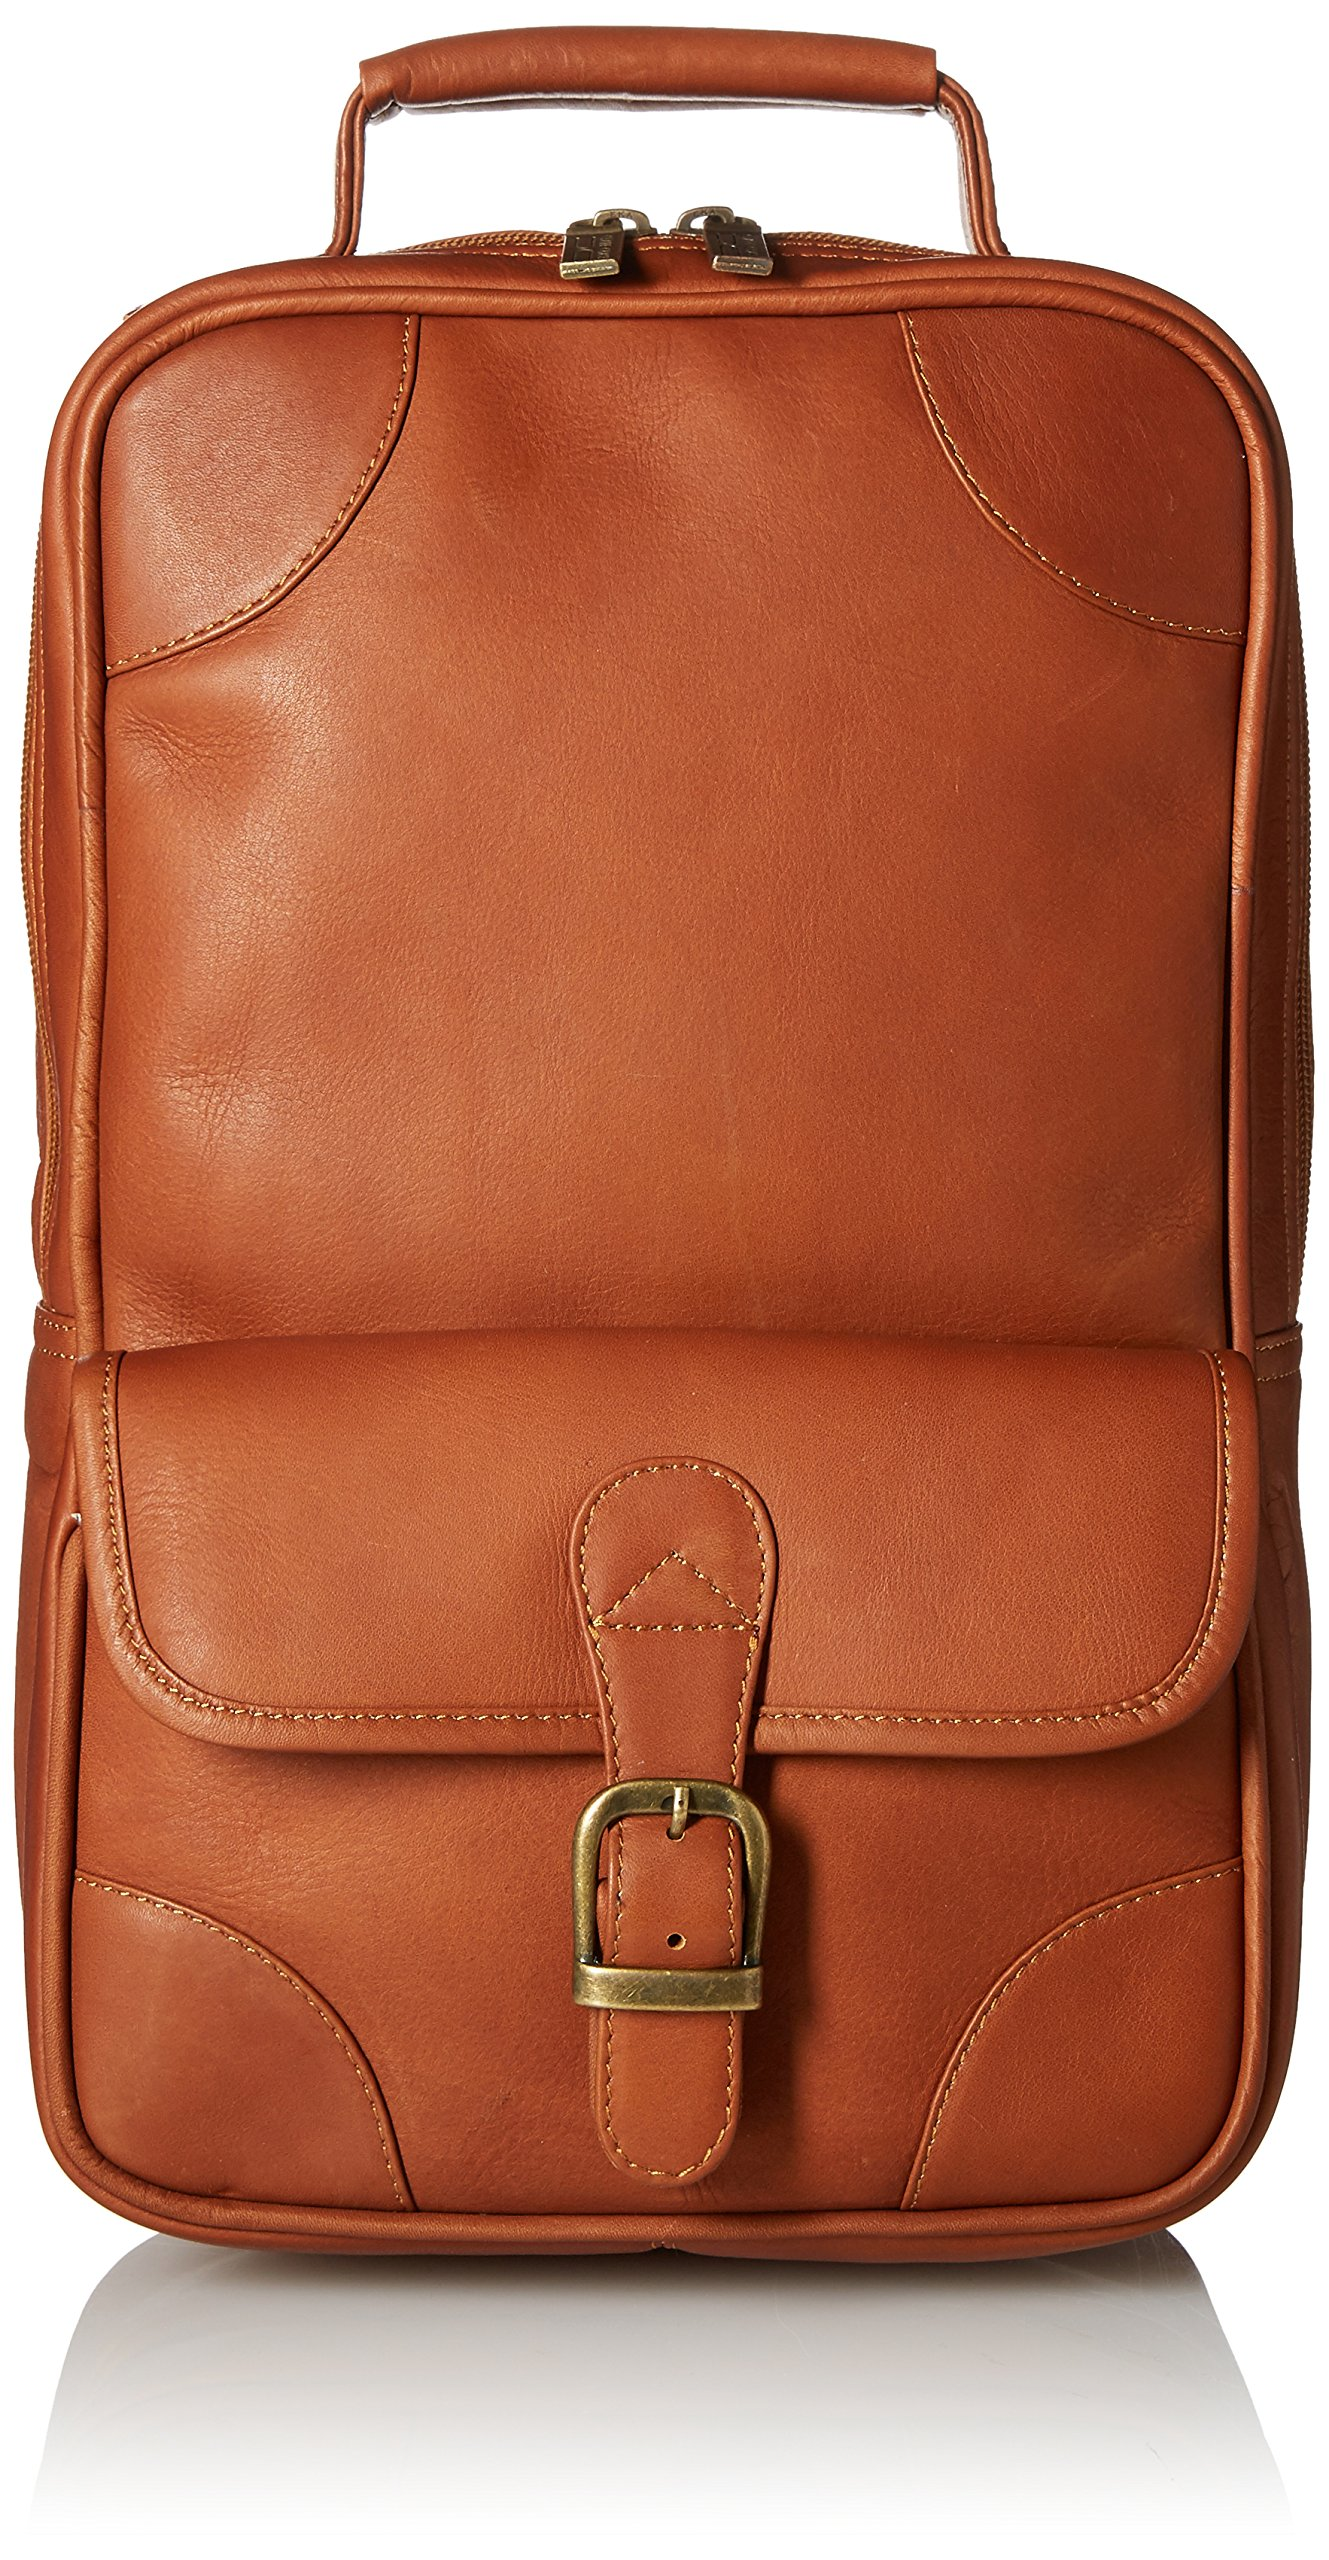 Claire Chase Upright Golf Shoe Bag, Saddle by ClaireChase (Image #1)